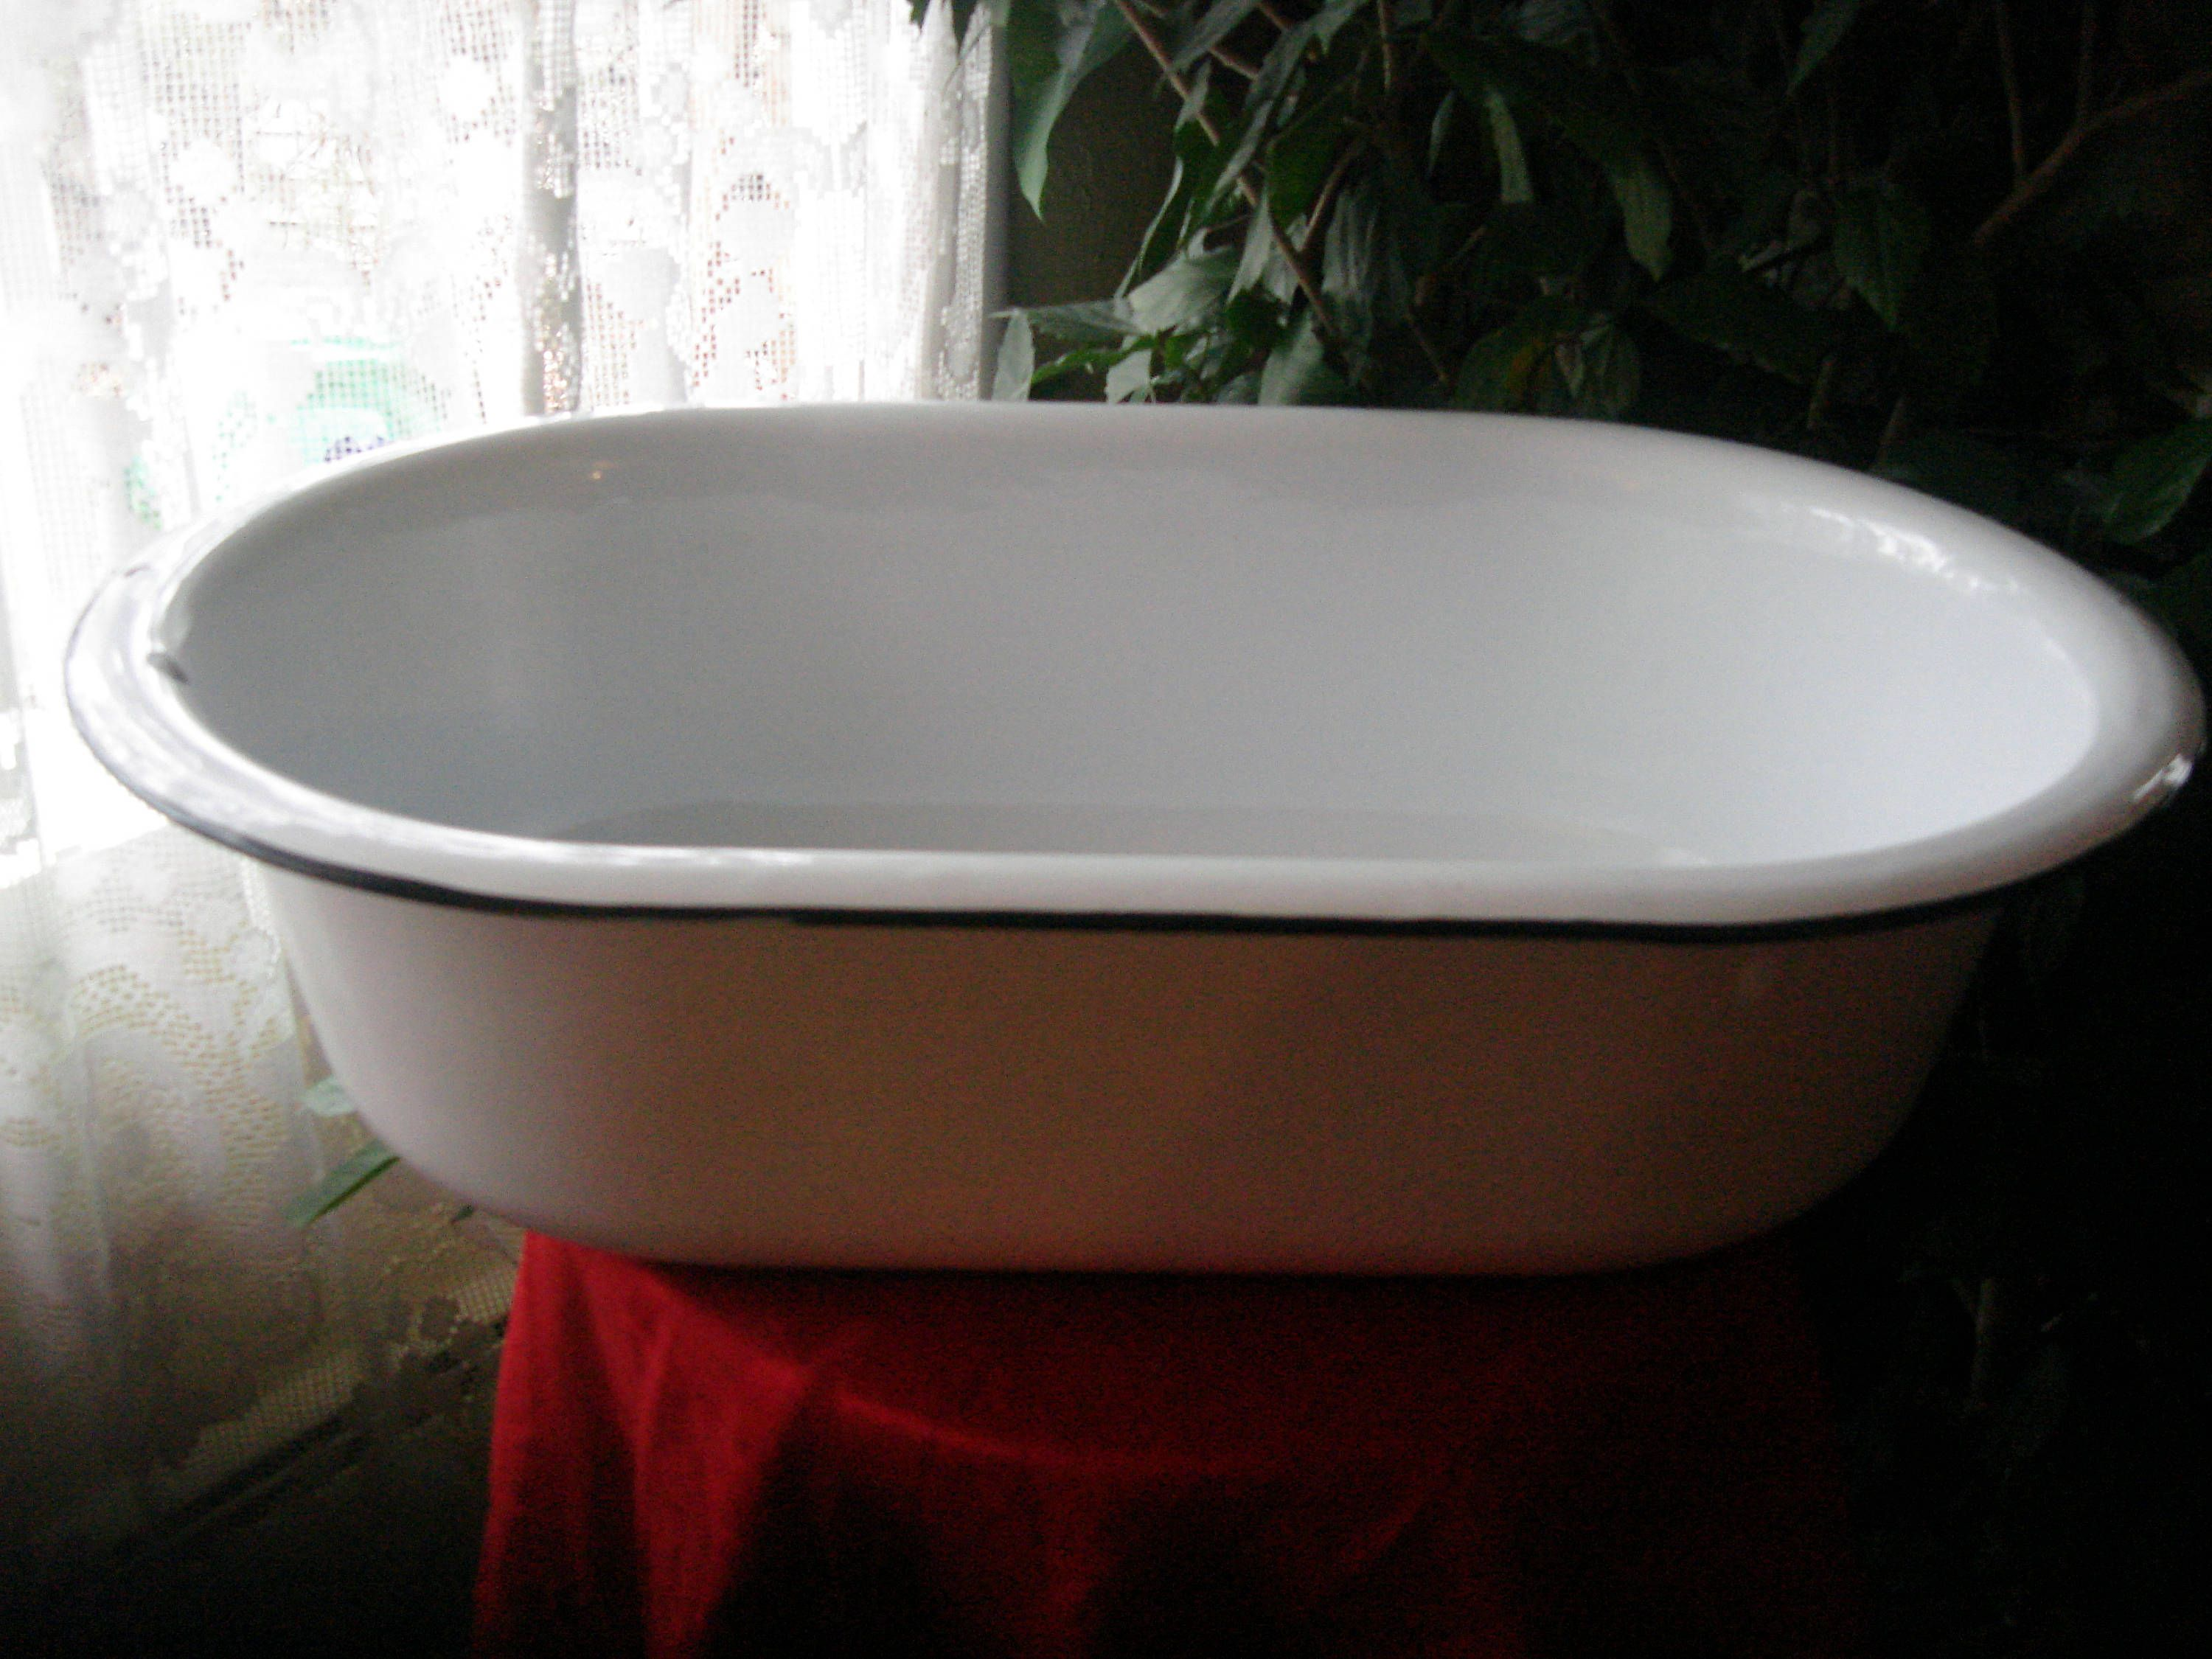 Antique Powder Blue Enamelware Baby Bath Tub Large Oval Enamel Tub